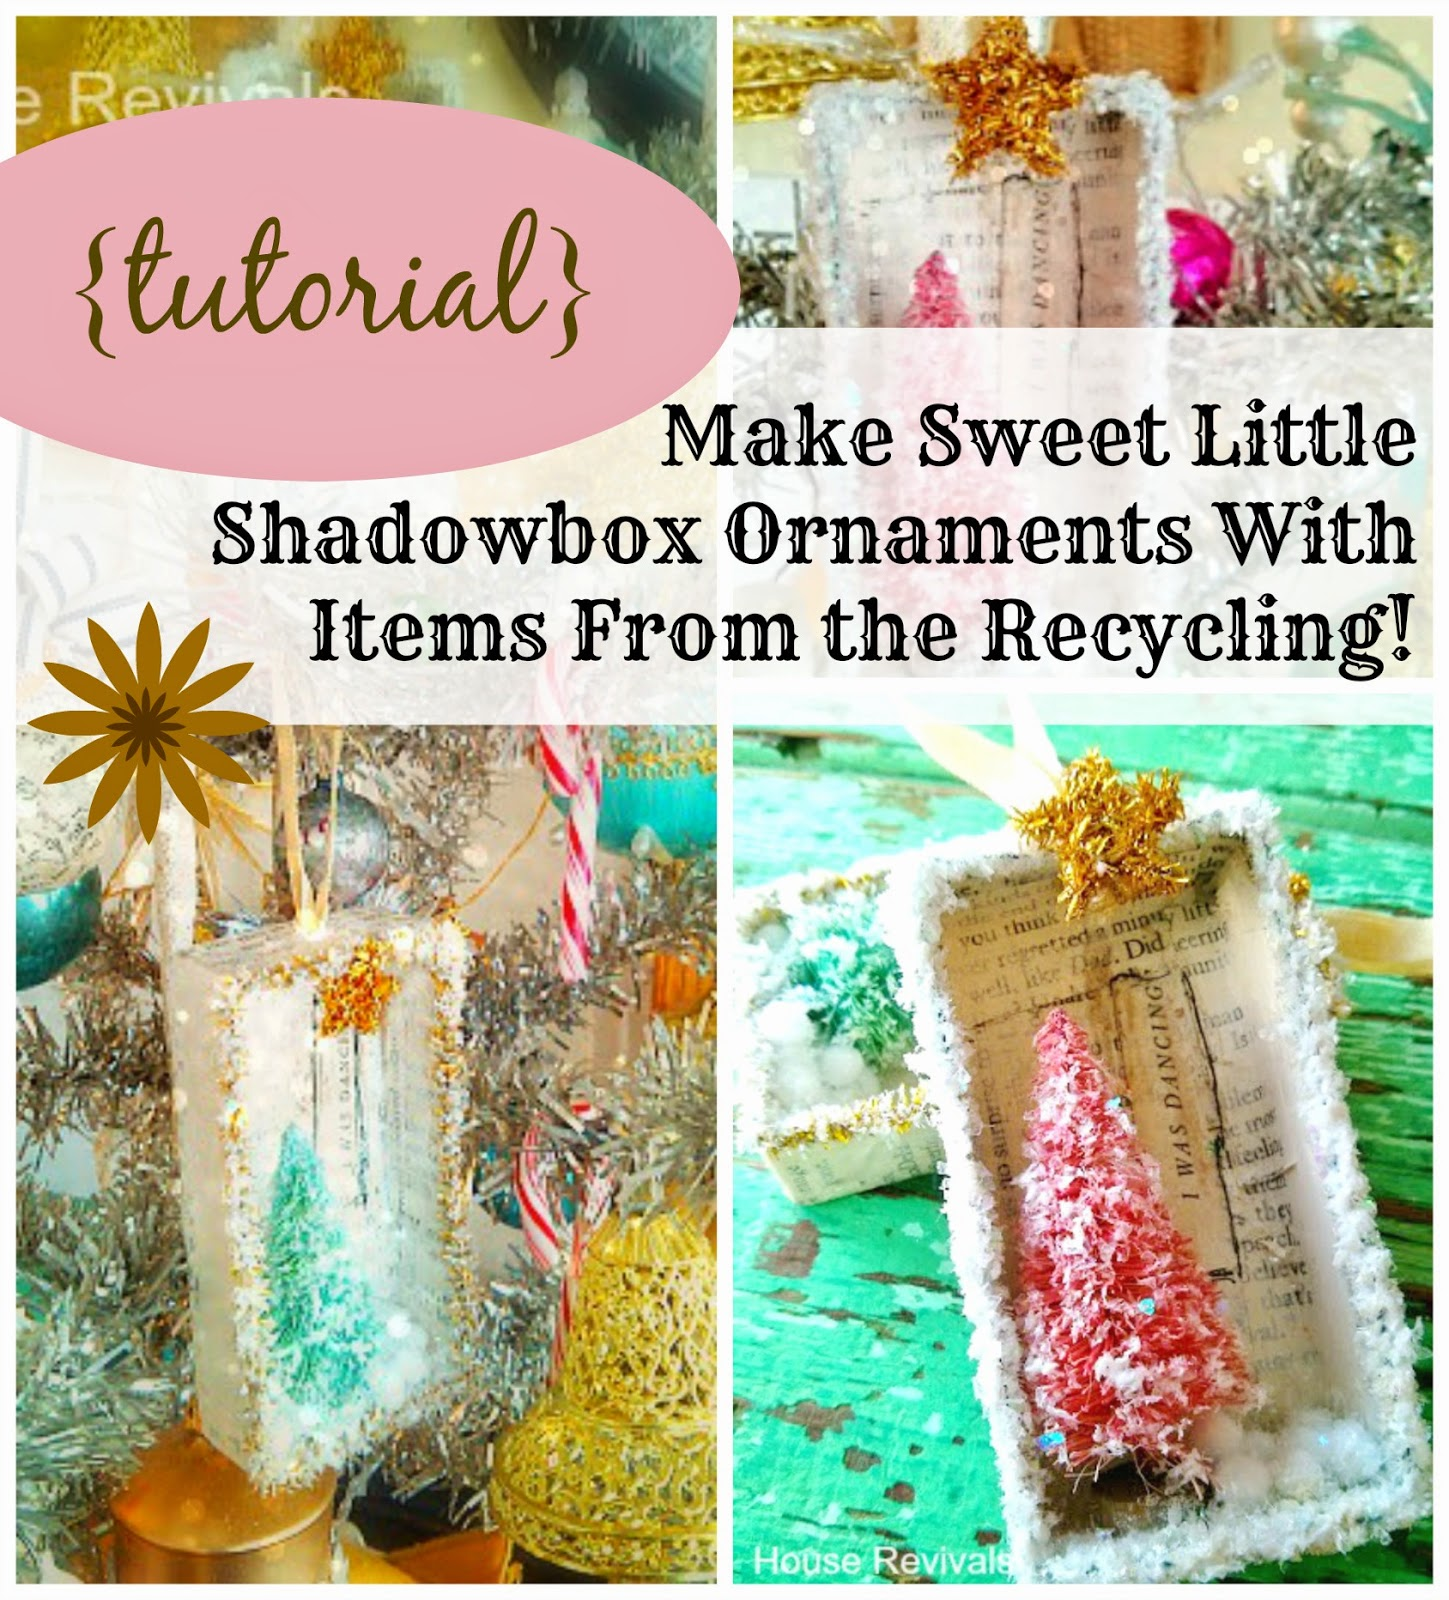 Vintage style ornaments - Make Vintage Style Shadowbox Ornaments From Recycled Materials